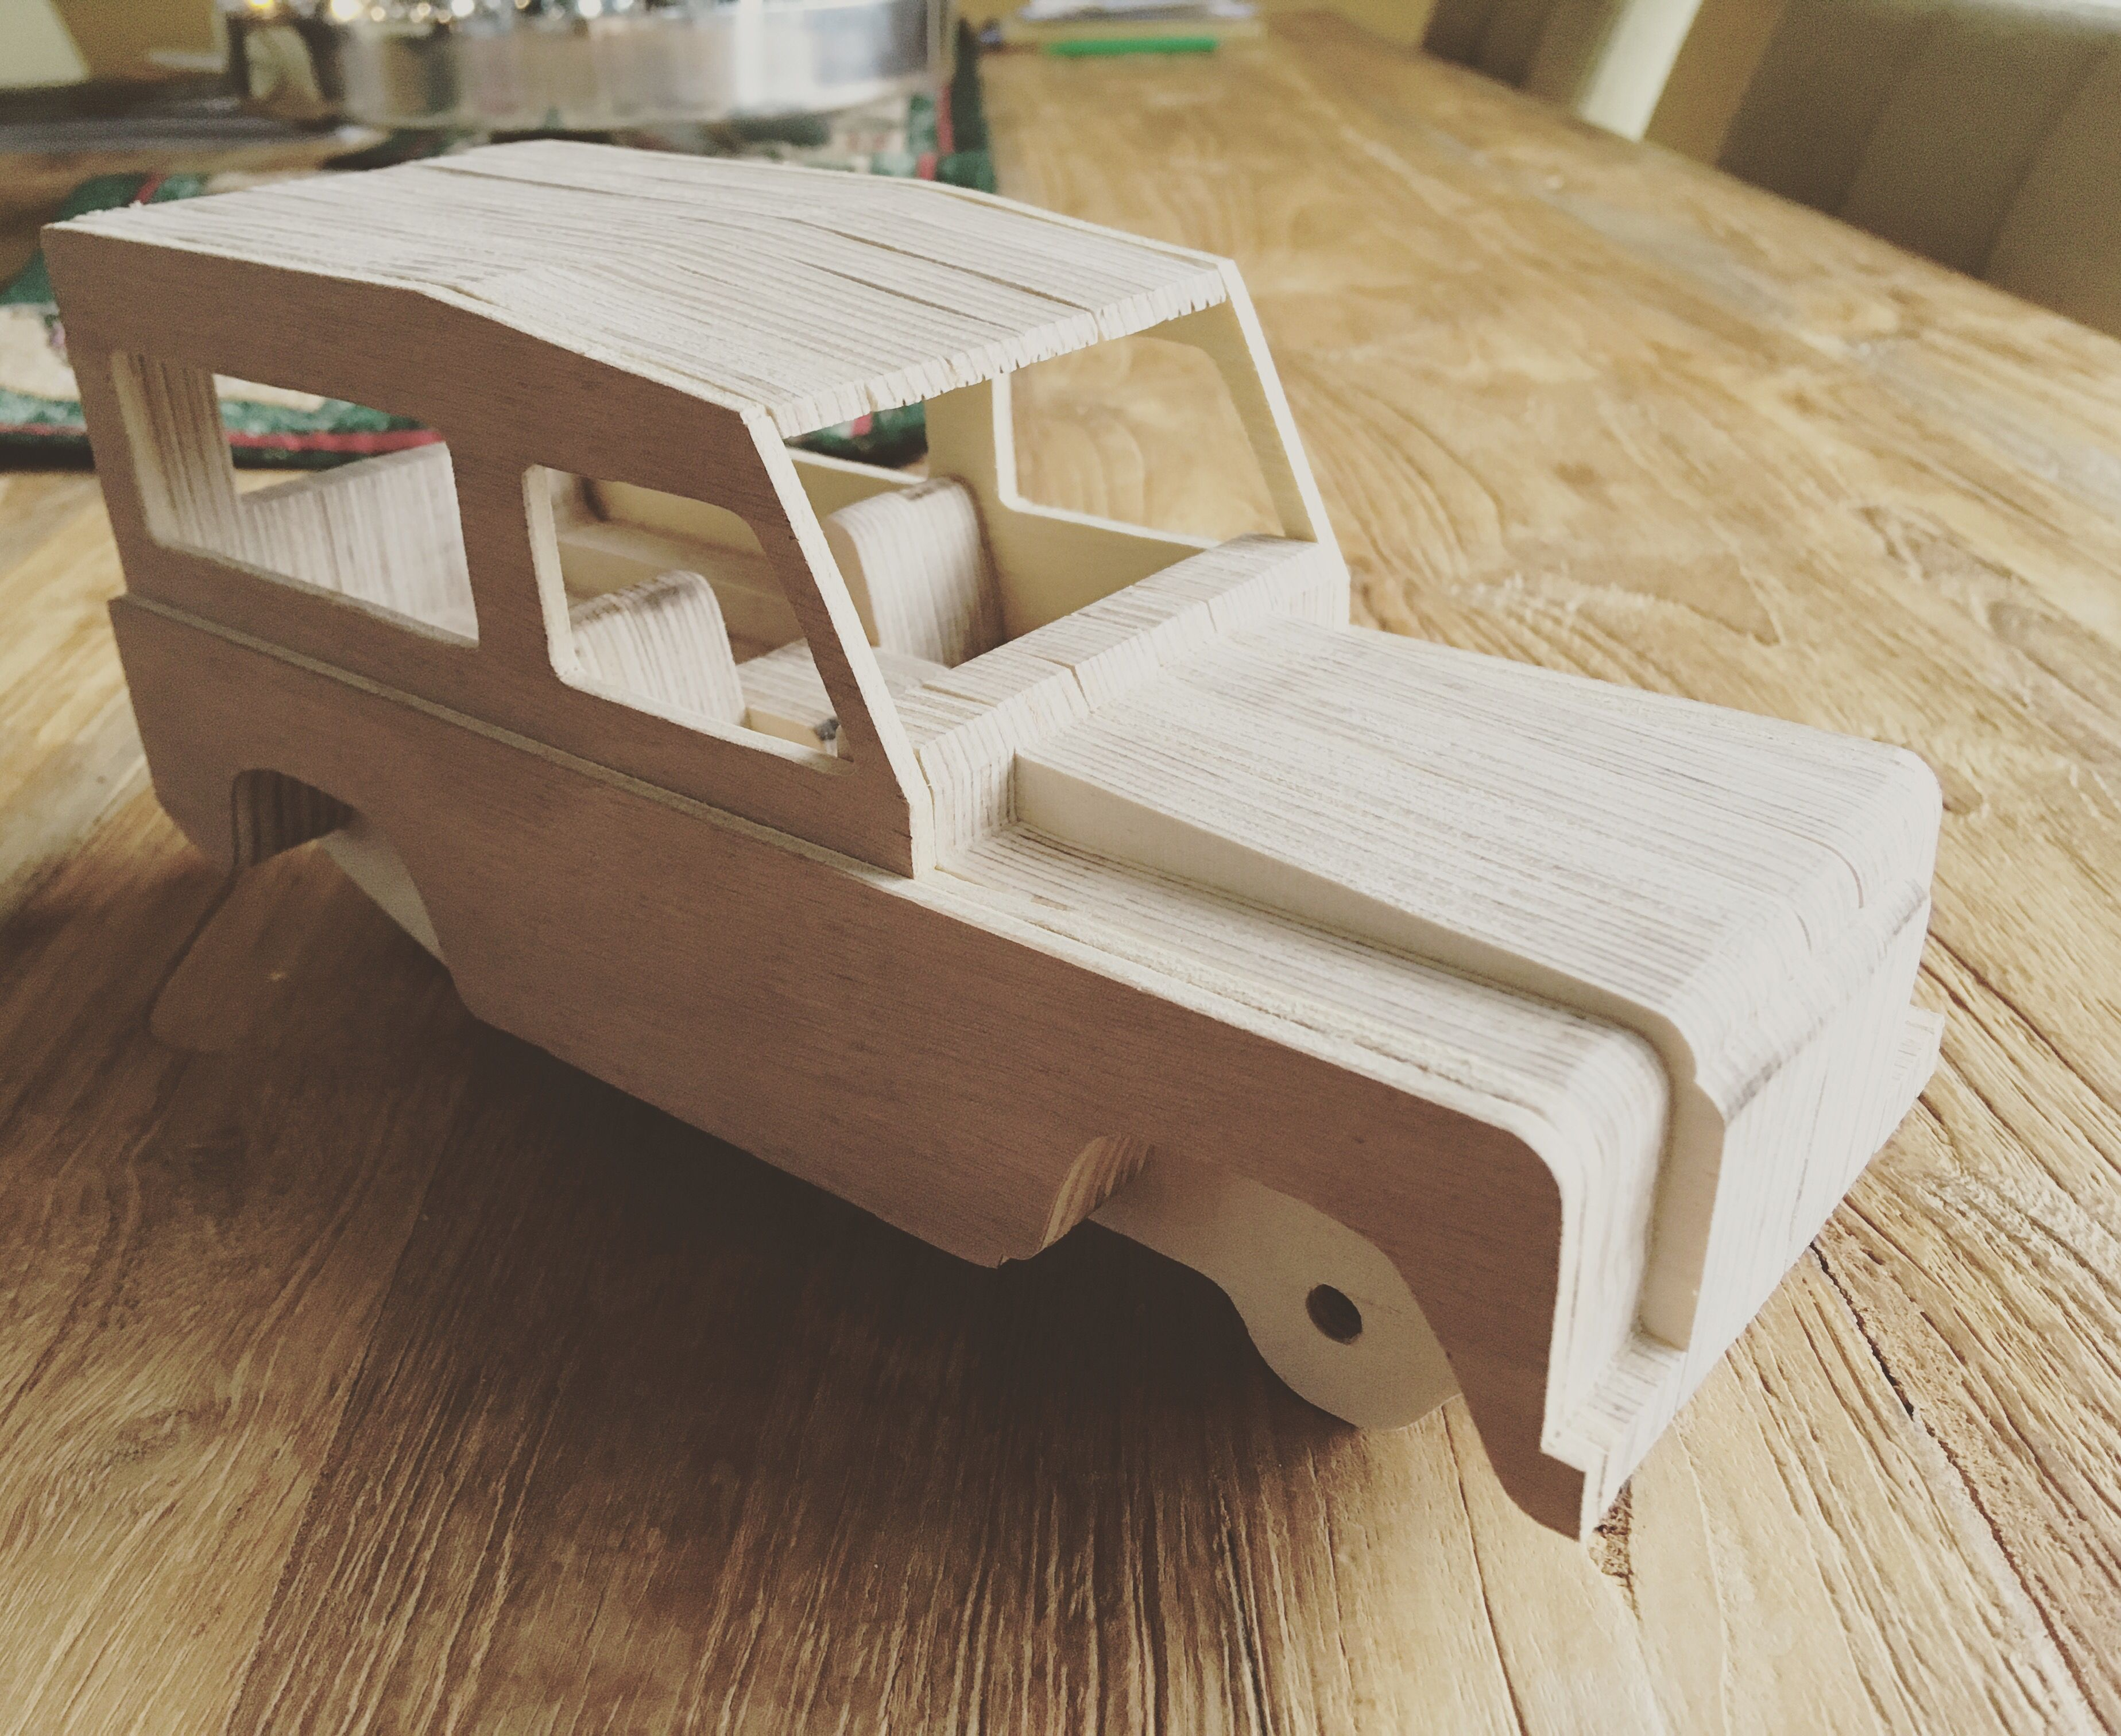 land rover wooden toy diy | kathy's board | diy wooden toys